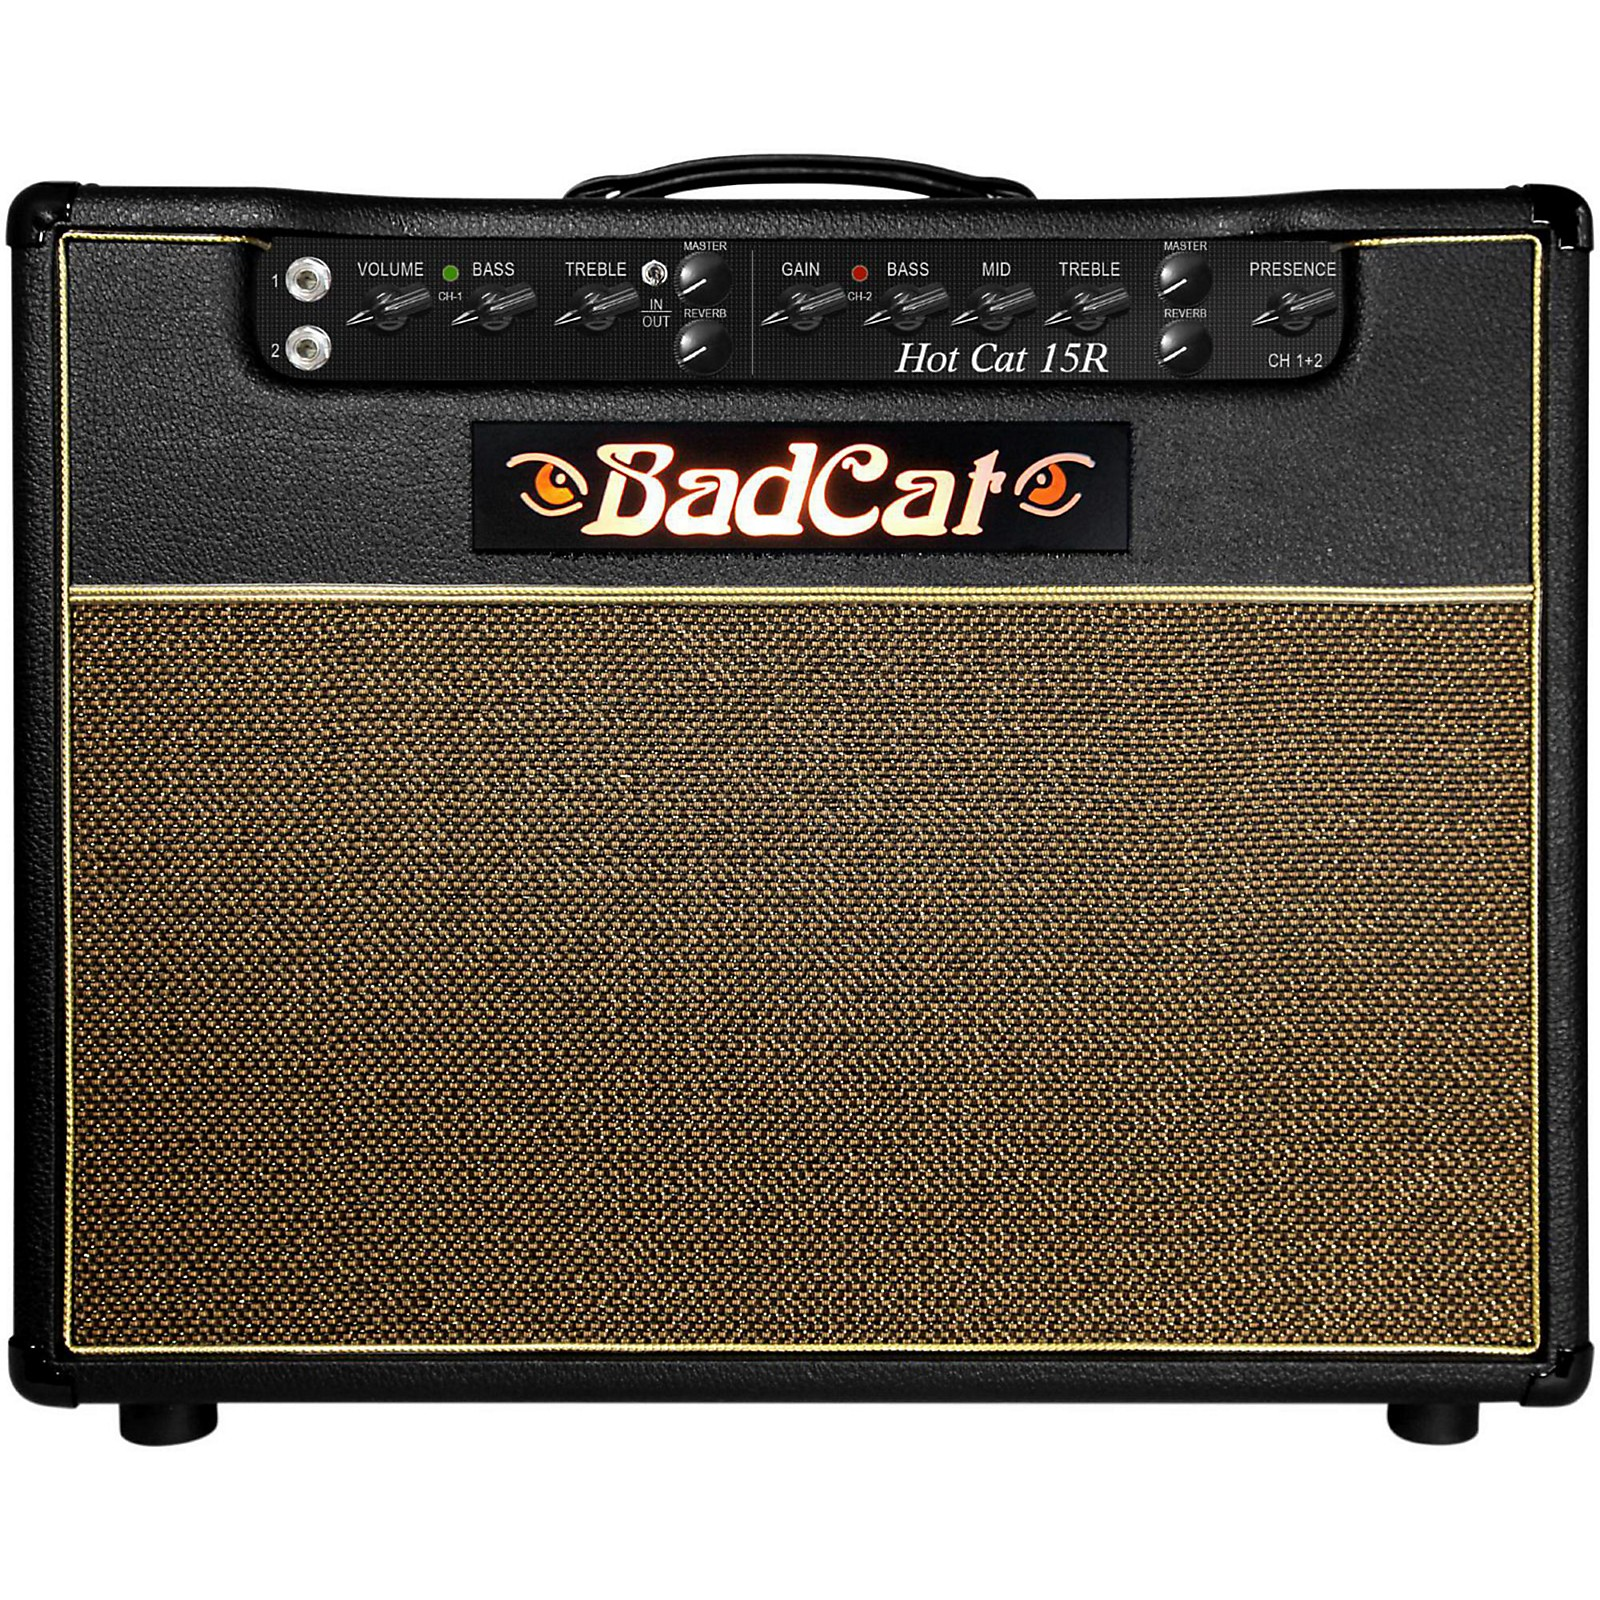 Bad Cat Hot Cat 15W 1x12 Guitar Combo Amp with Reverb